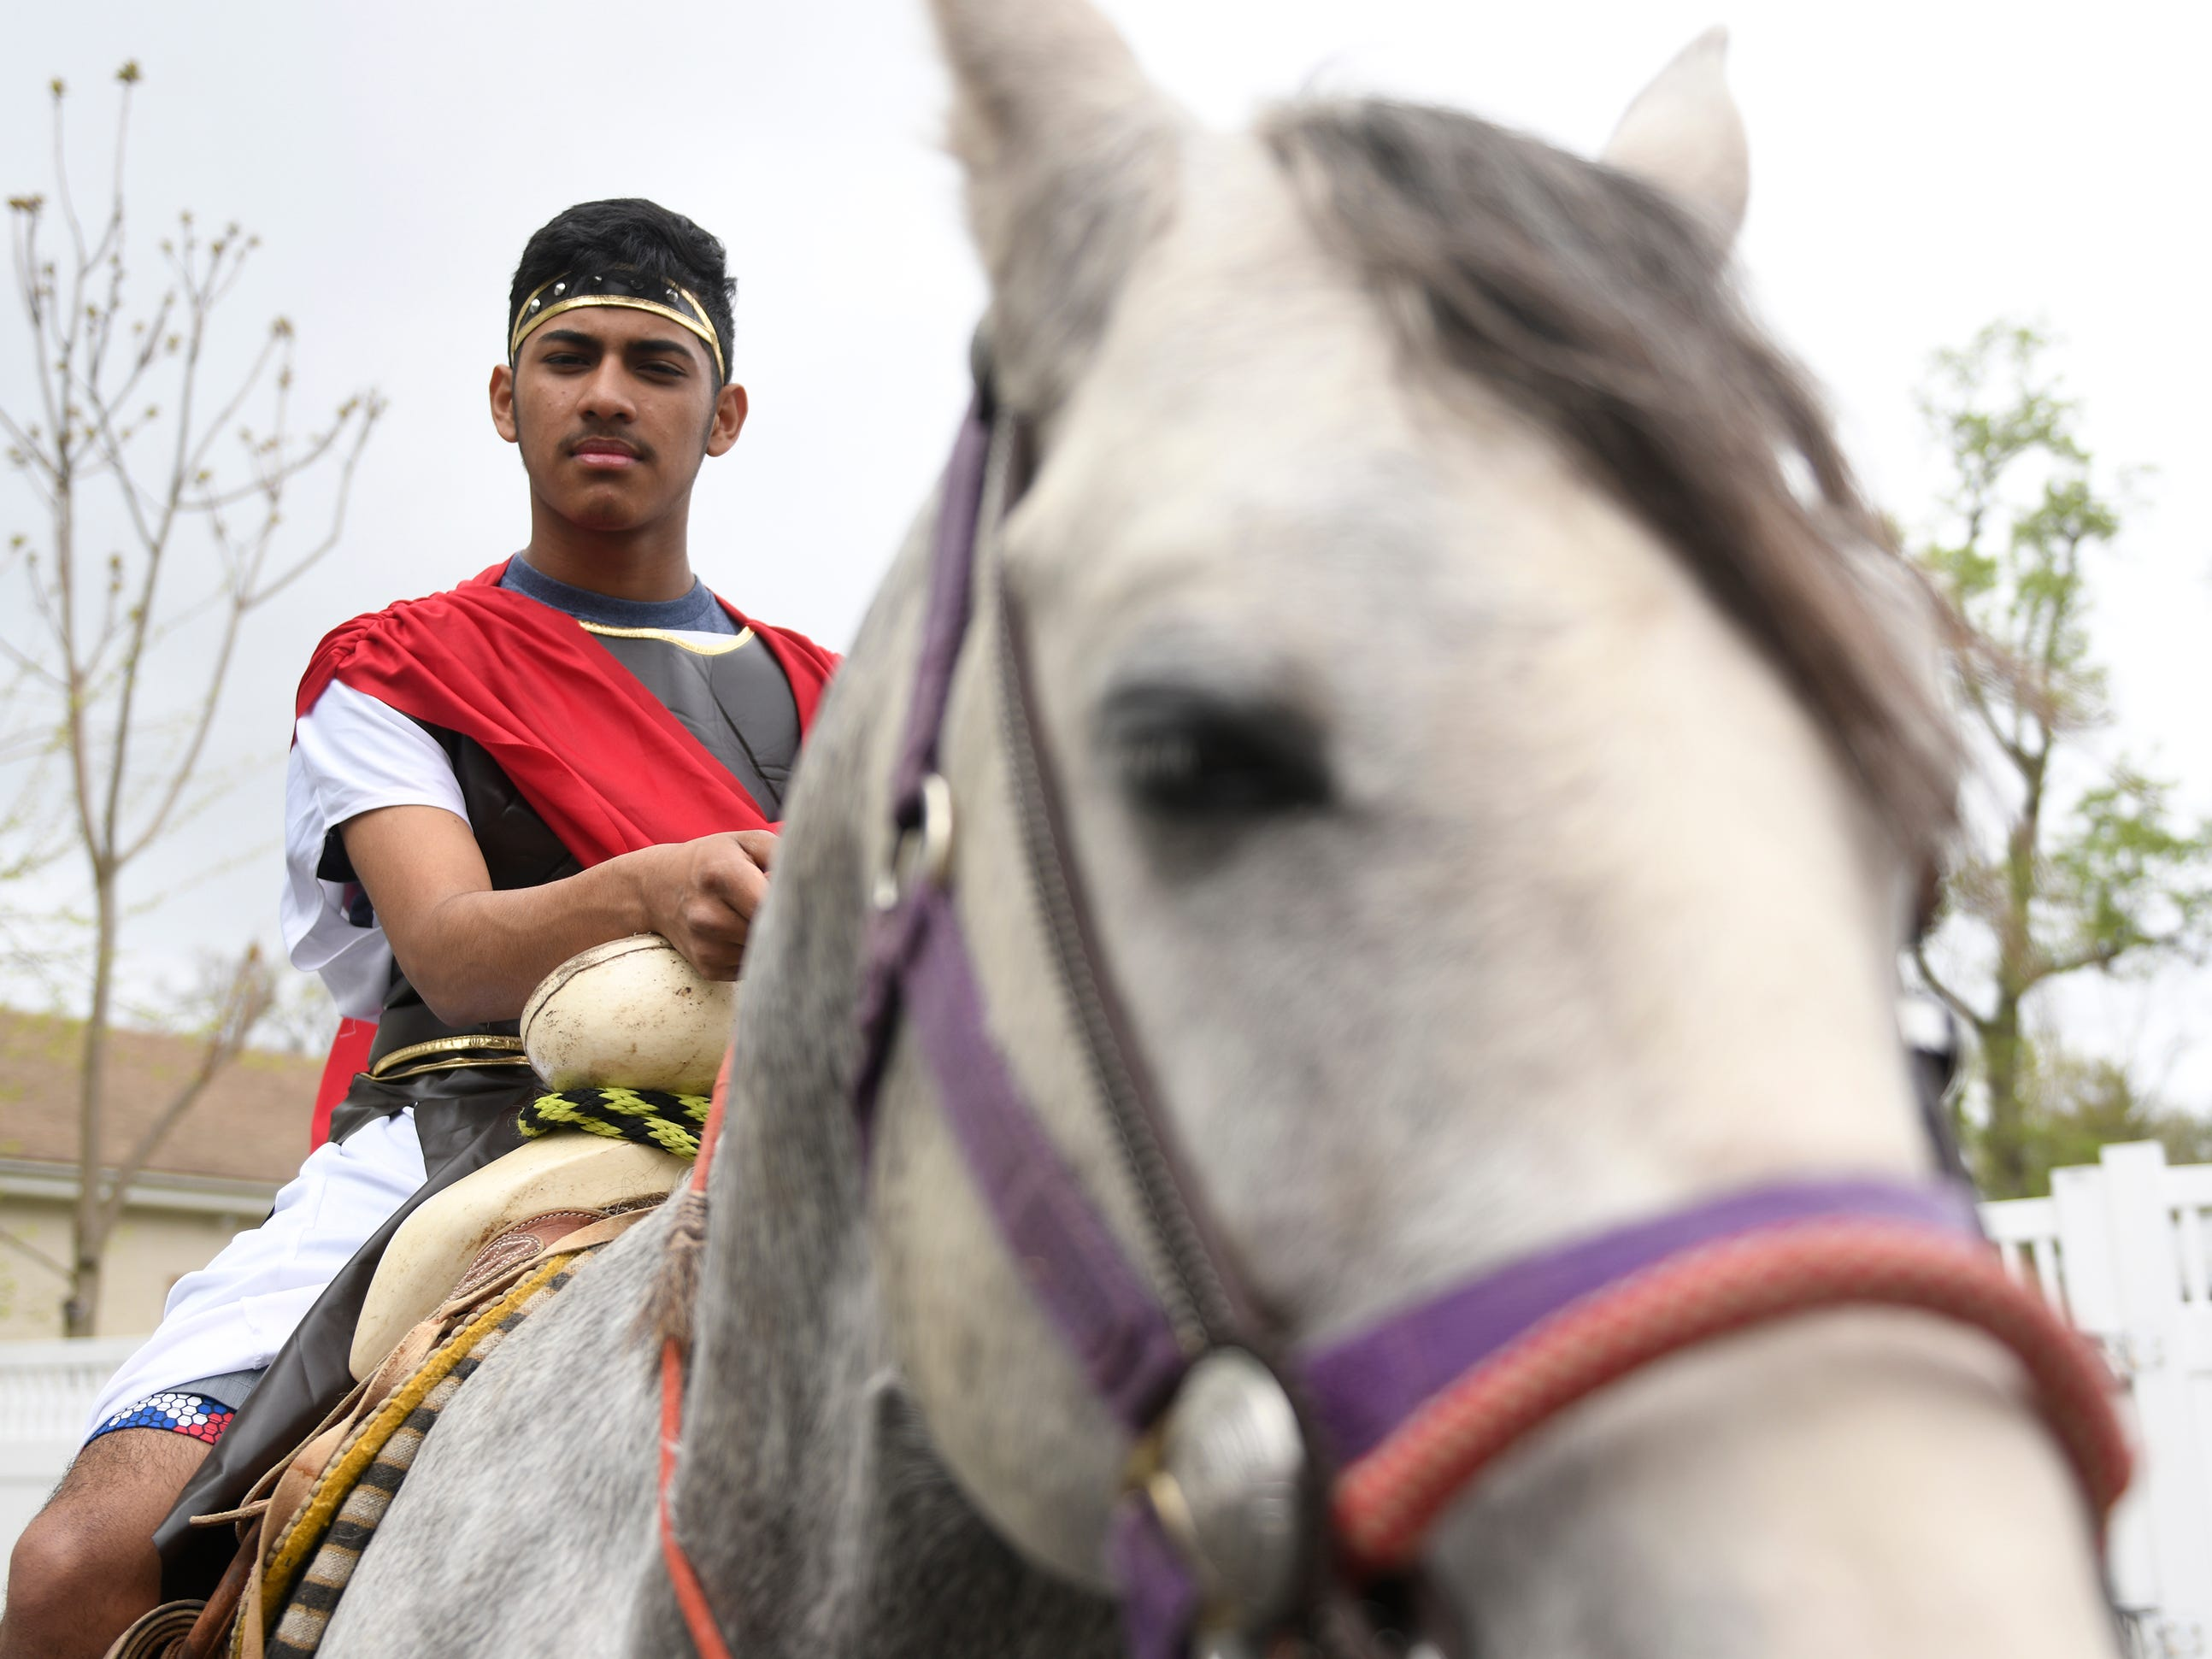 Lovenzo Garcia rides a horse during the Good Friday procession, hosted by Divine Mercy Parish in Vineland. The performance of the Passion of Christ marched down Almond Street.